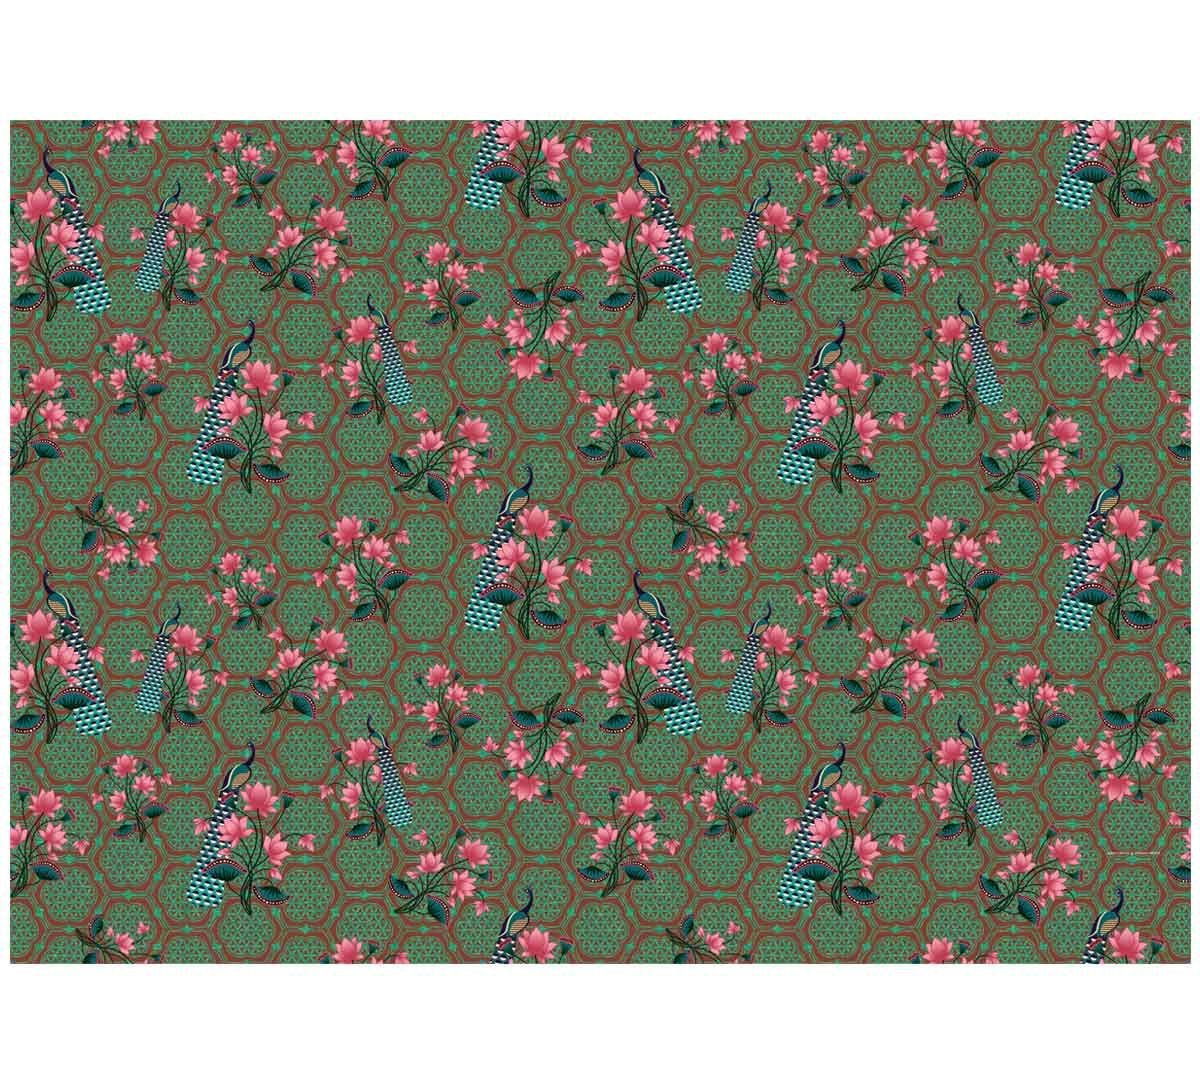 India Circus Realm of Pride Gift Wrapping Paper